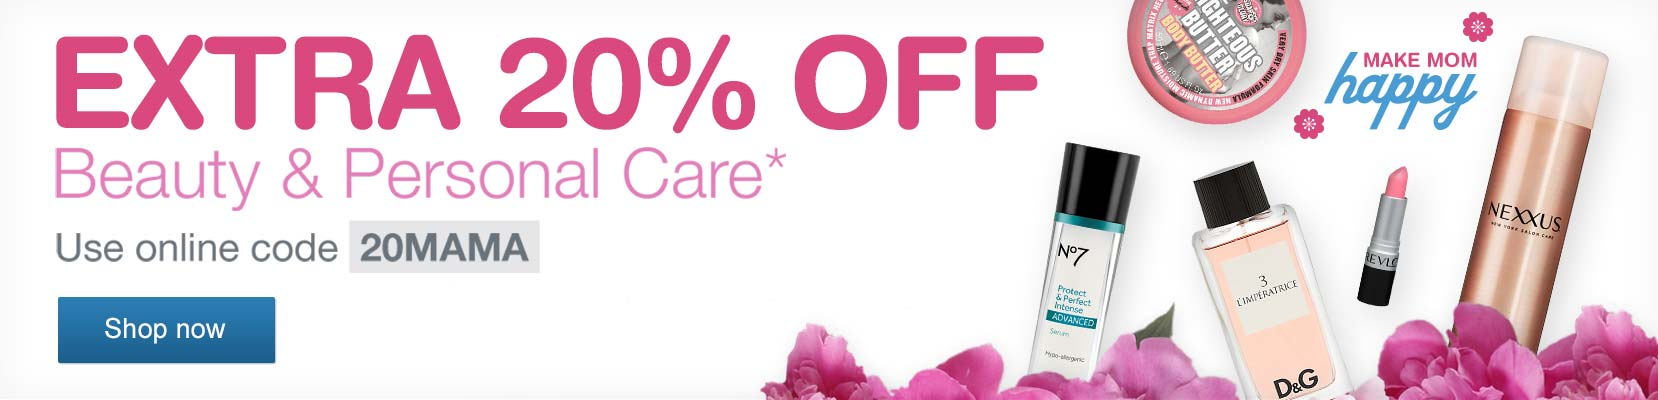 EXTRA 20% OFF Beauty & Personal Care.* Use online code 20MAMA. Shop now.